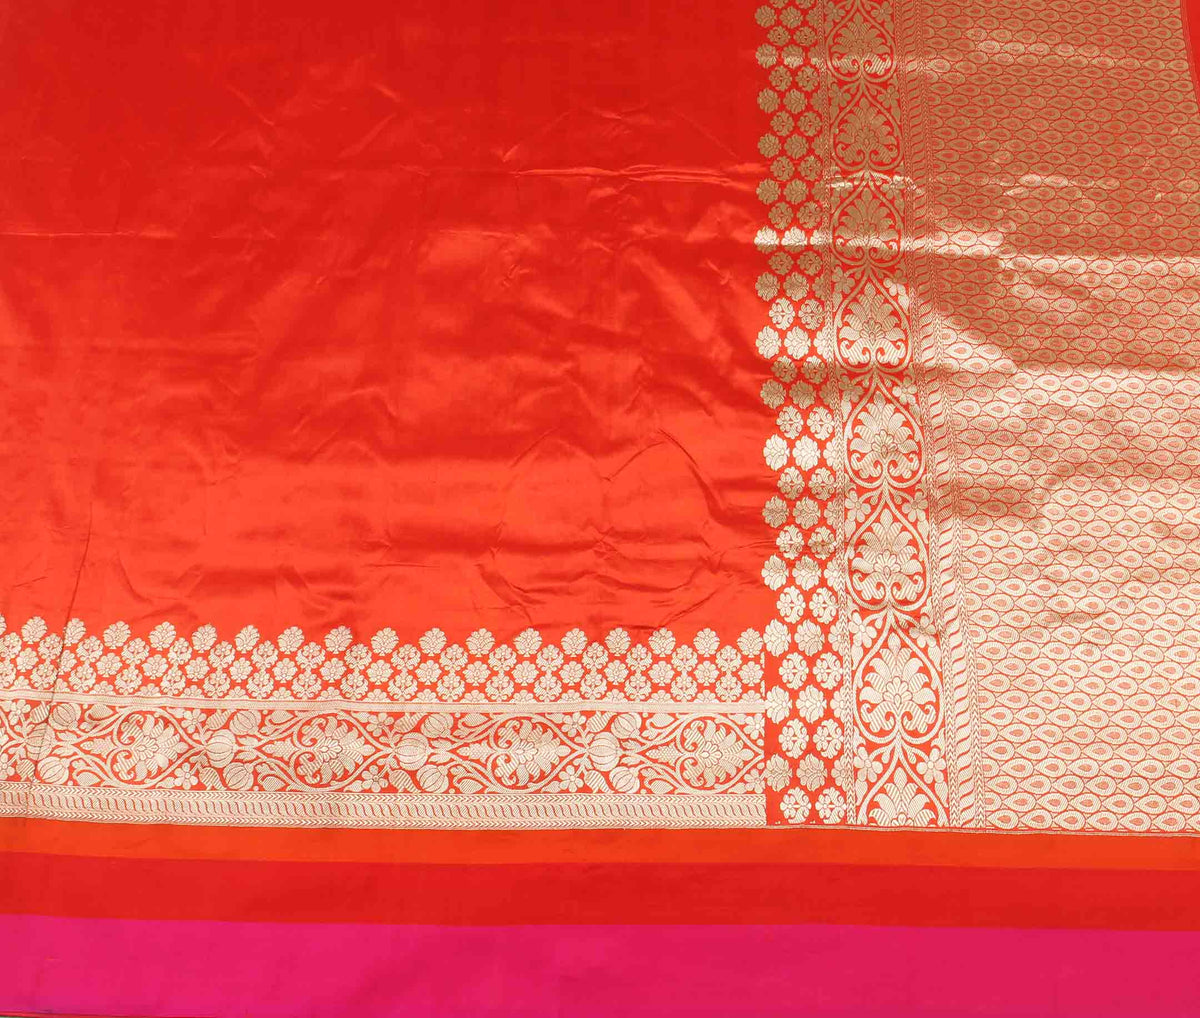 Dark Orange Katan silk handwoven plain Banarasi saree with flower border (2) flat